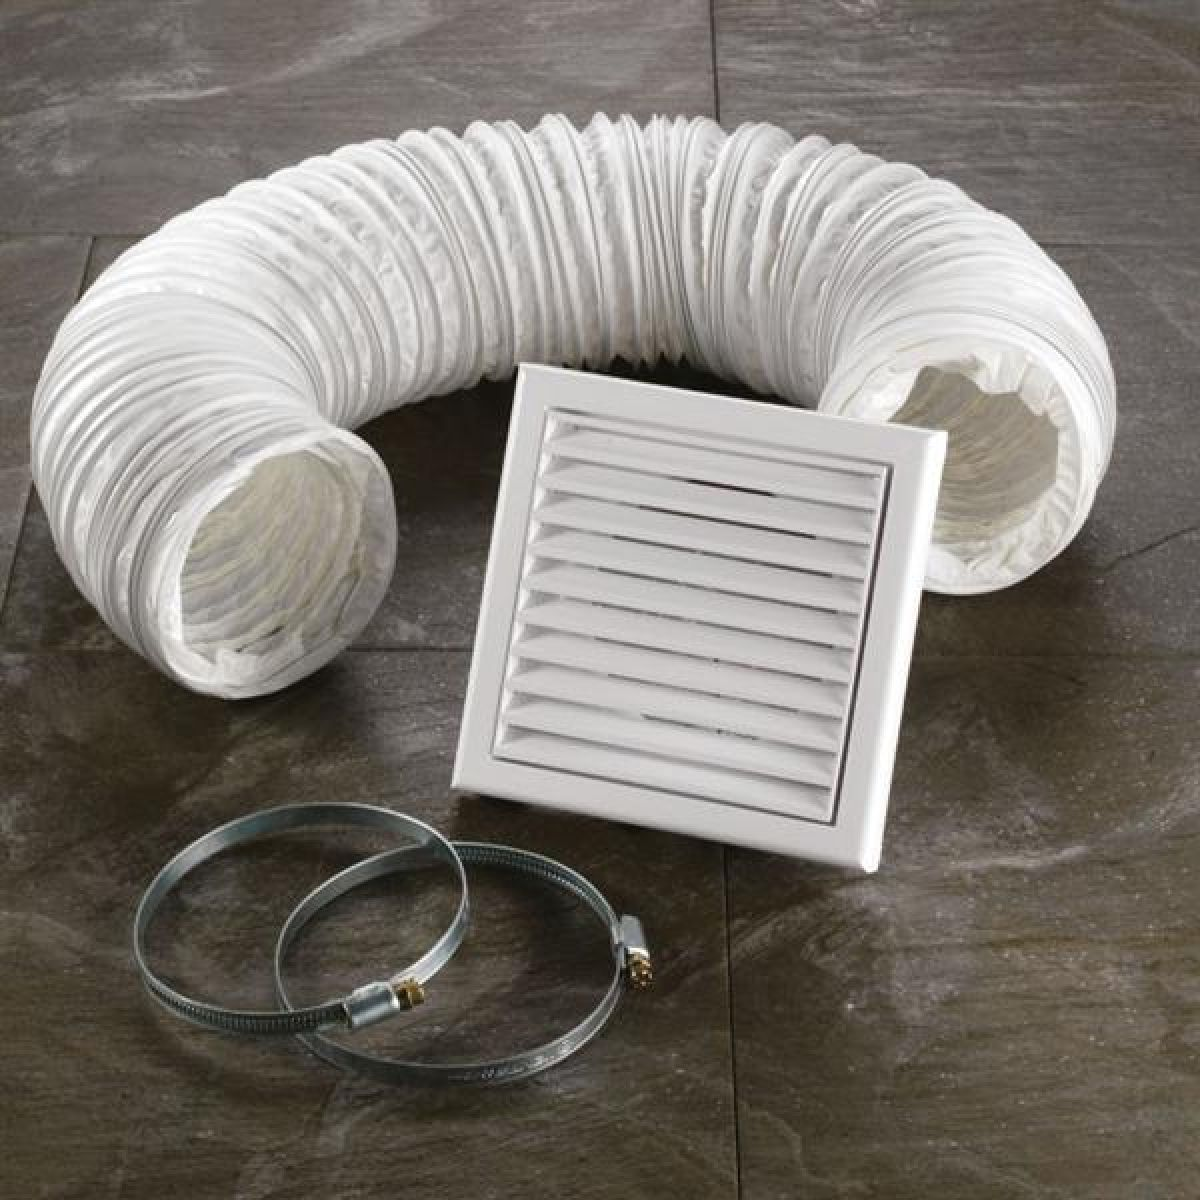 HiB Wetroom Extractor Fan Accessory Kit in White